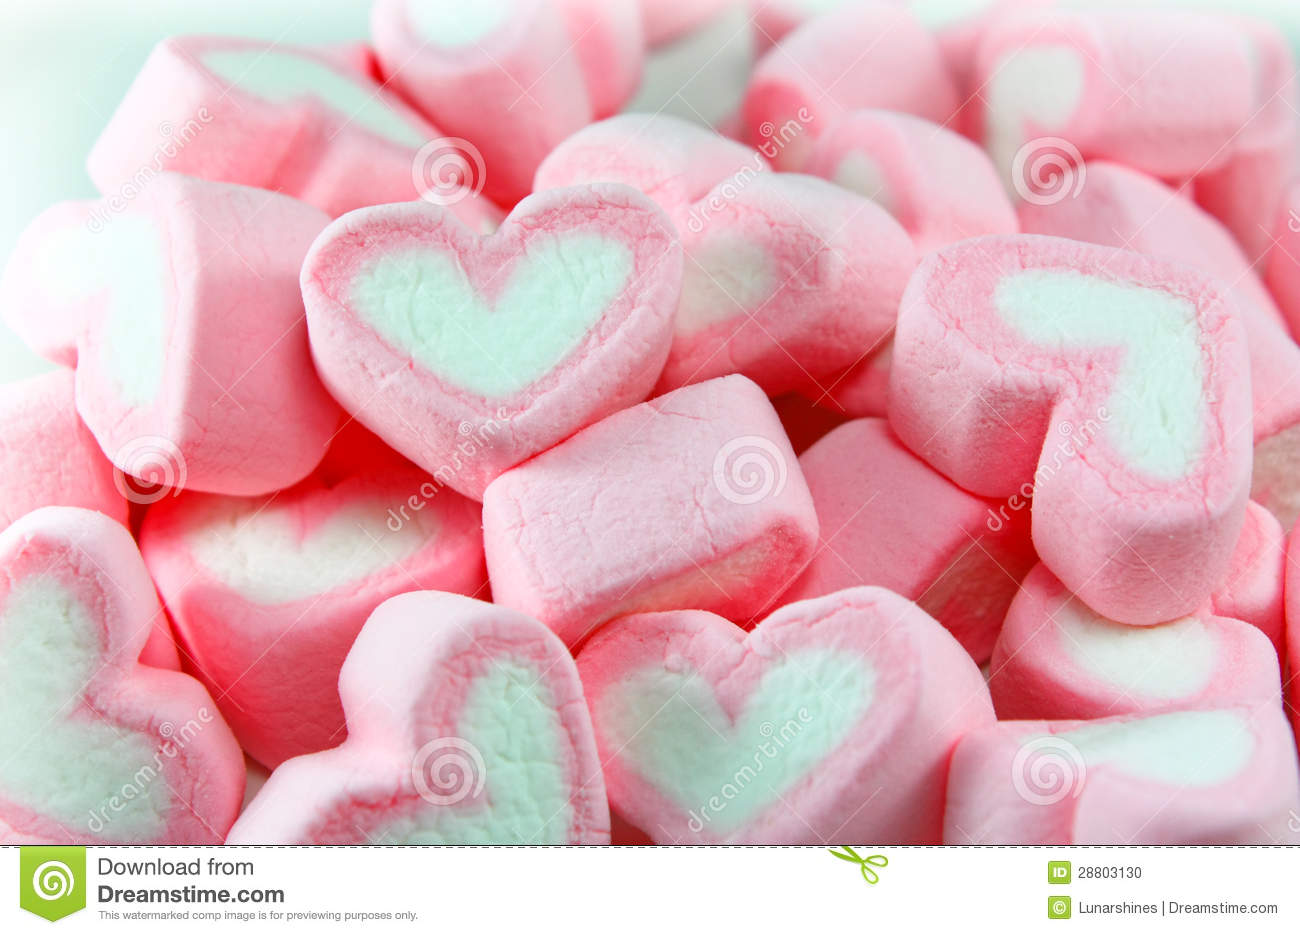 Cute Dessert Wallpaper Pink And White Marshmallow Background Stock Photo Image